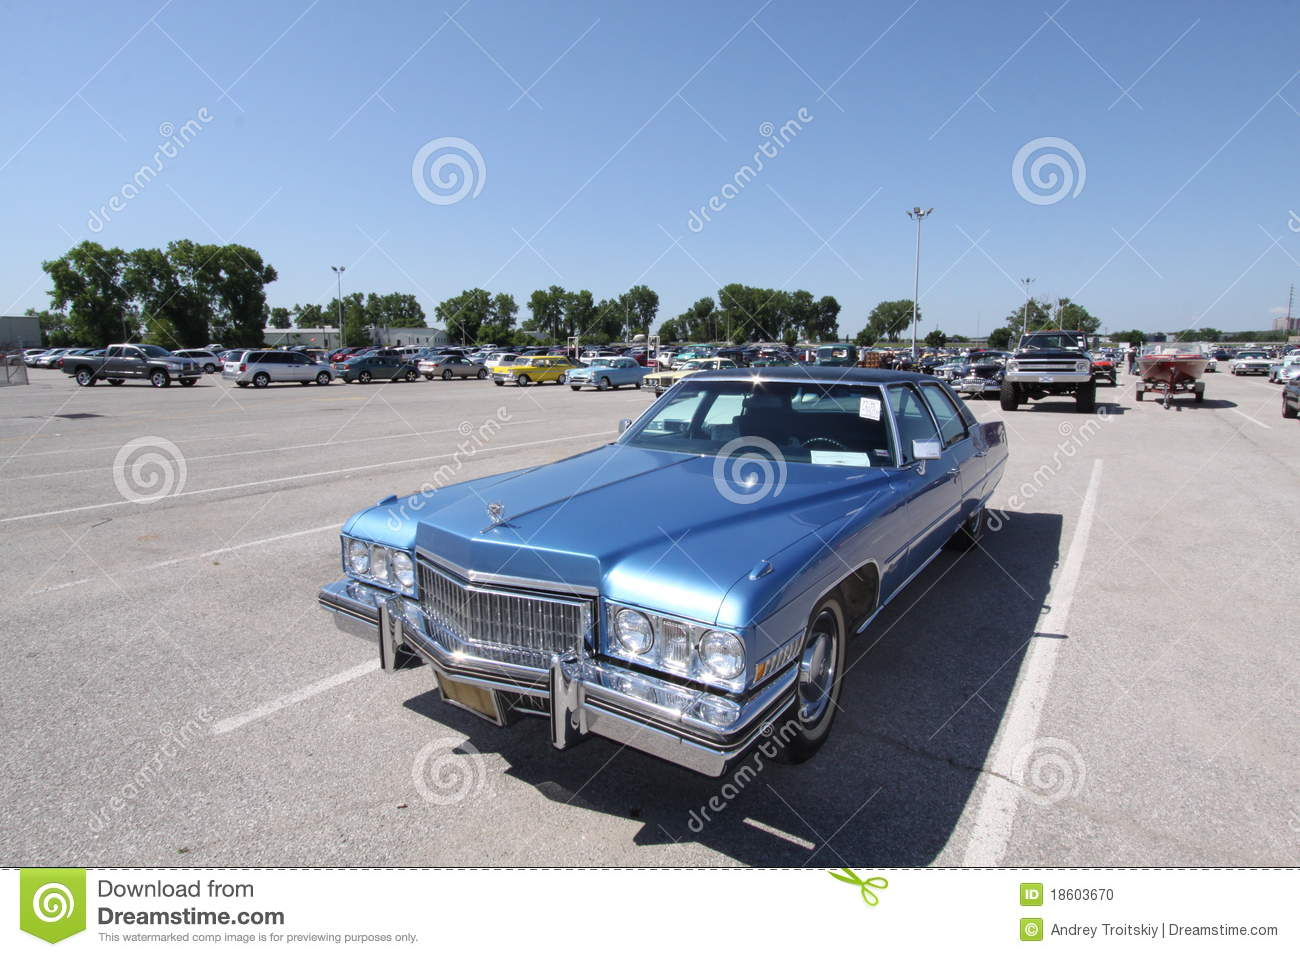 1973 Cadillac Fleetwood Brougham For Sale >> Cadillac Fleetwood Sixty Special Brougham Editorial Image | CartoonDealer.com #18603670